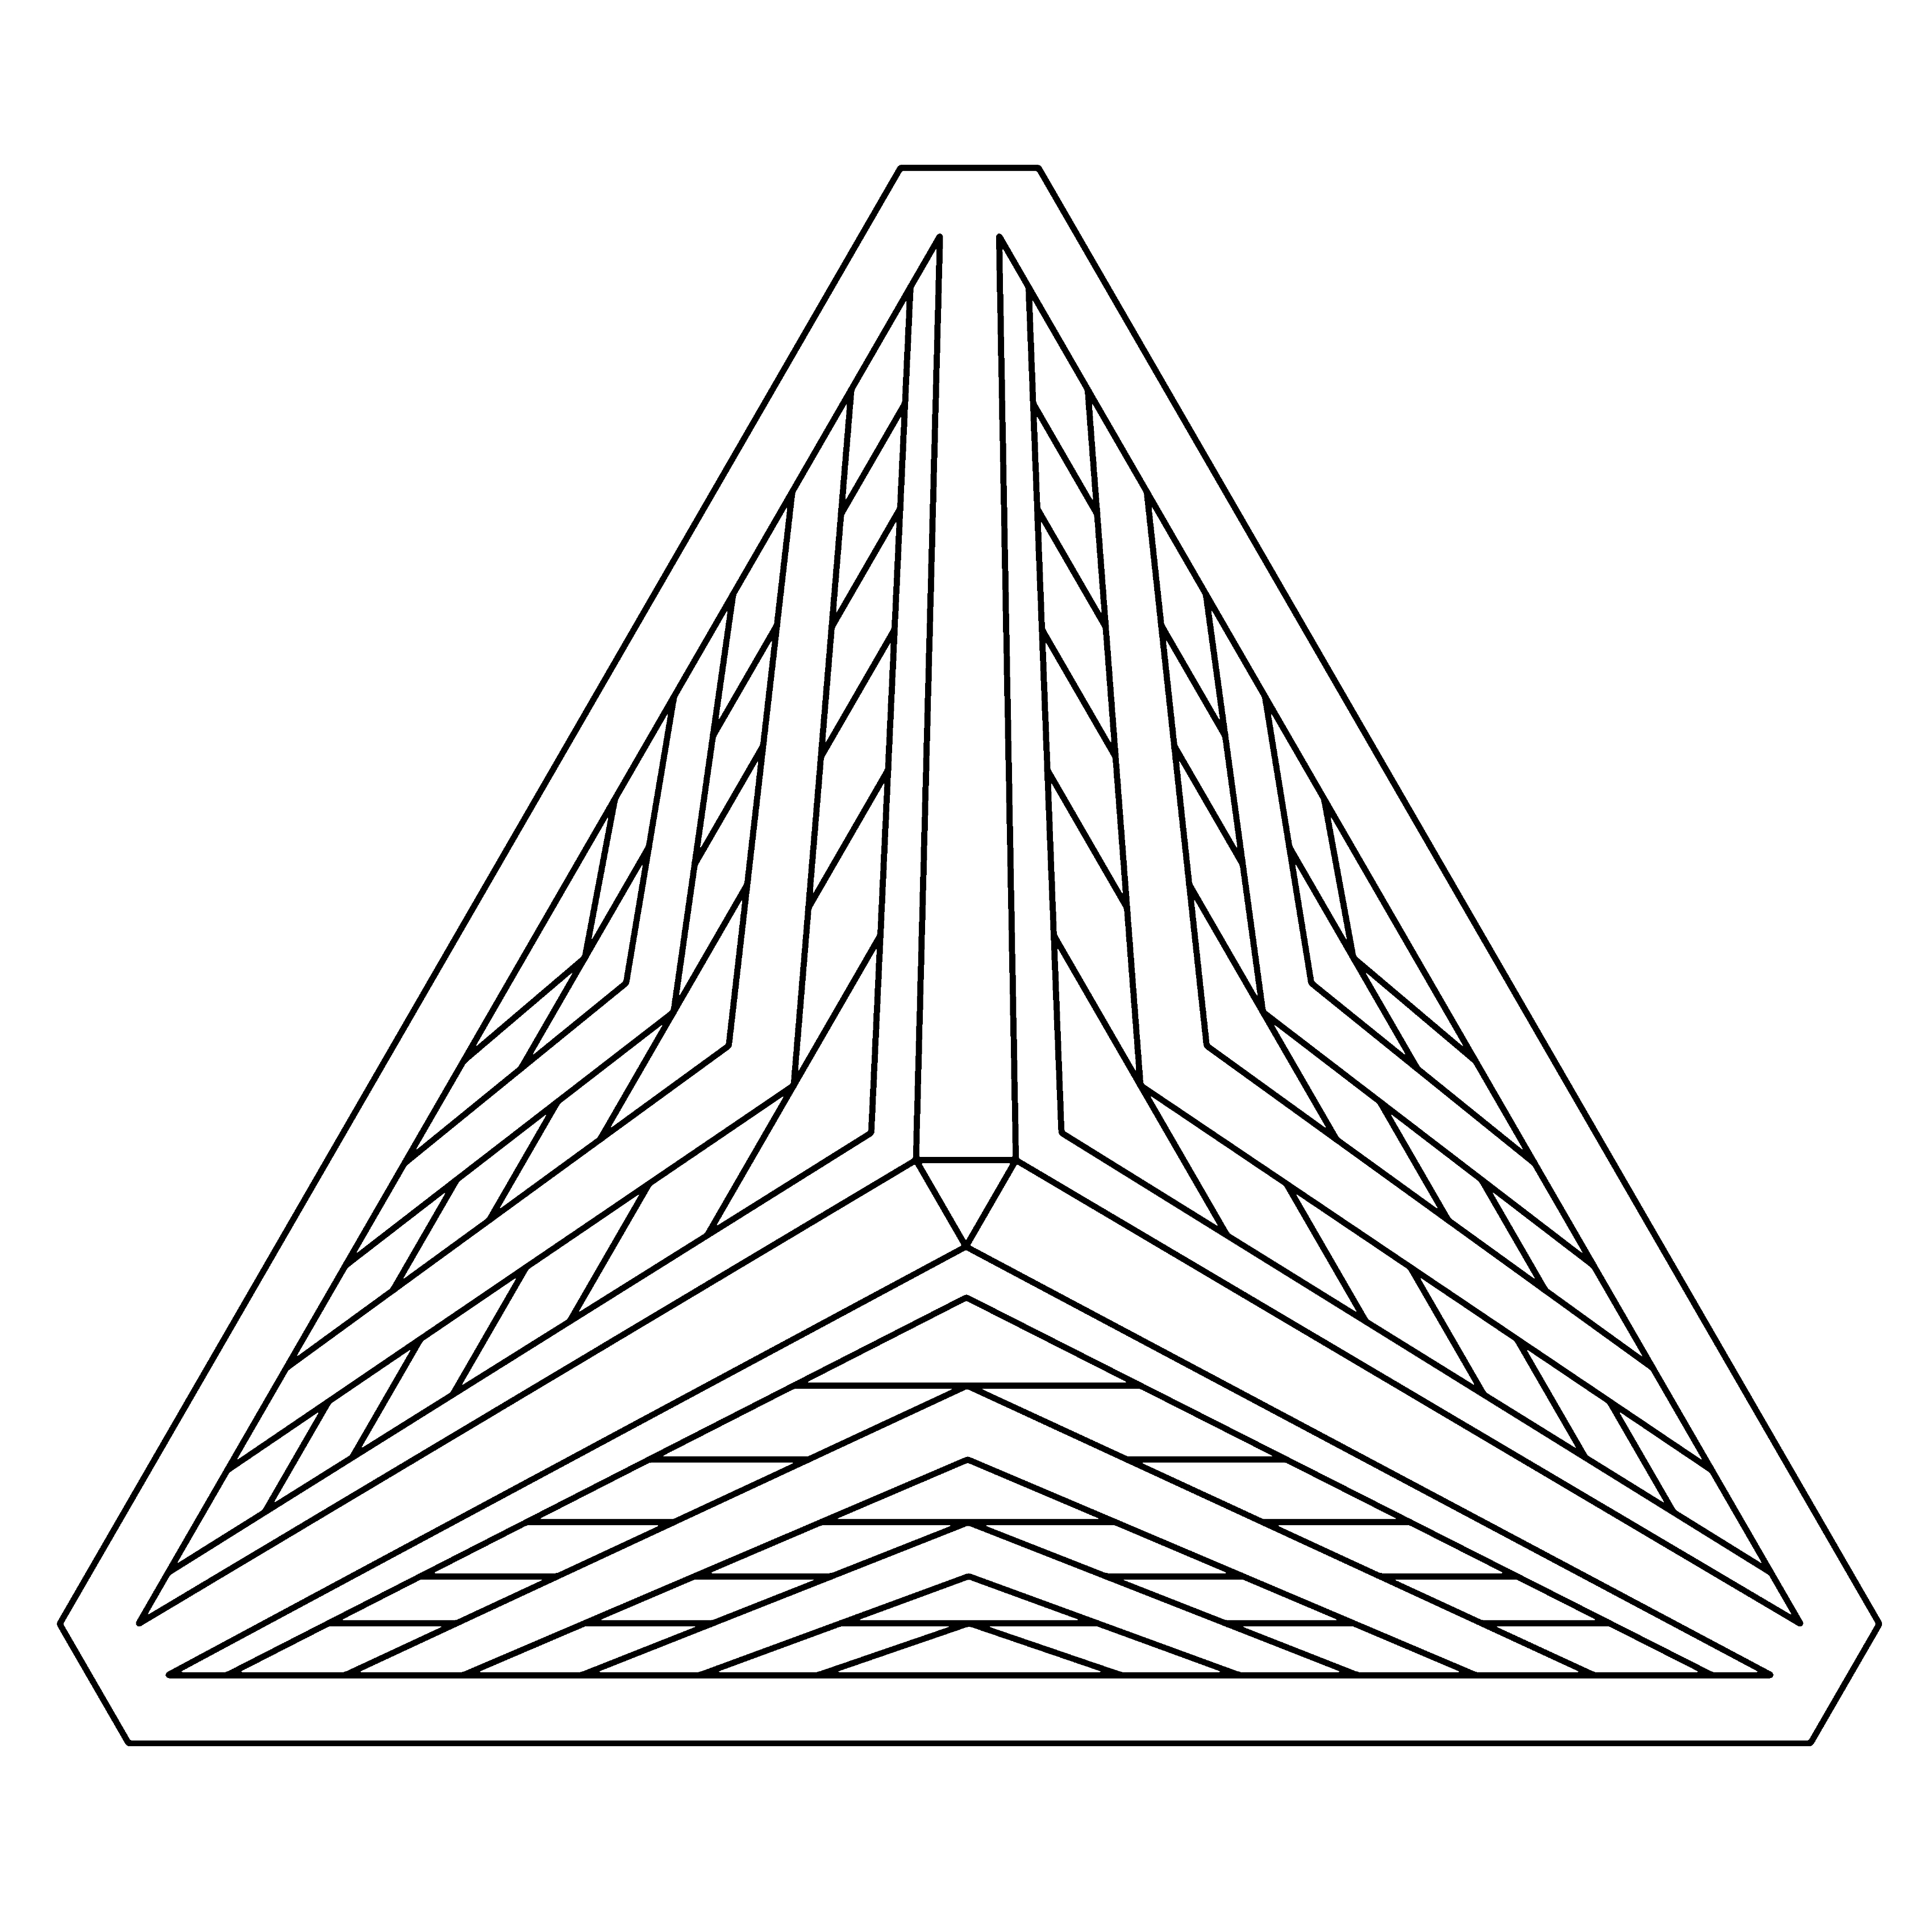 3400x3400 Geometric Coloring Pages To Print 3d Illusion Geometric Coloring